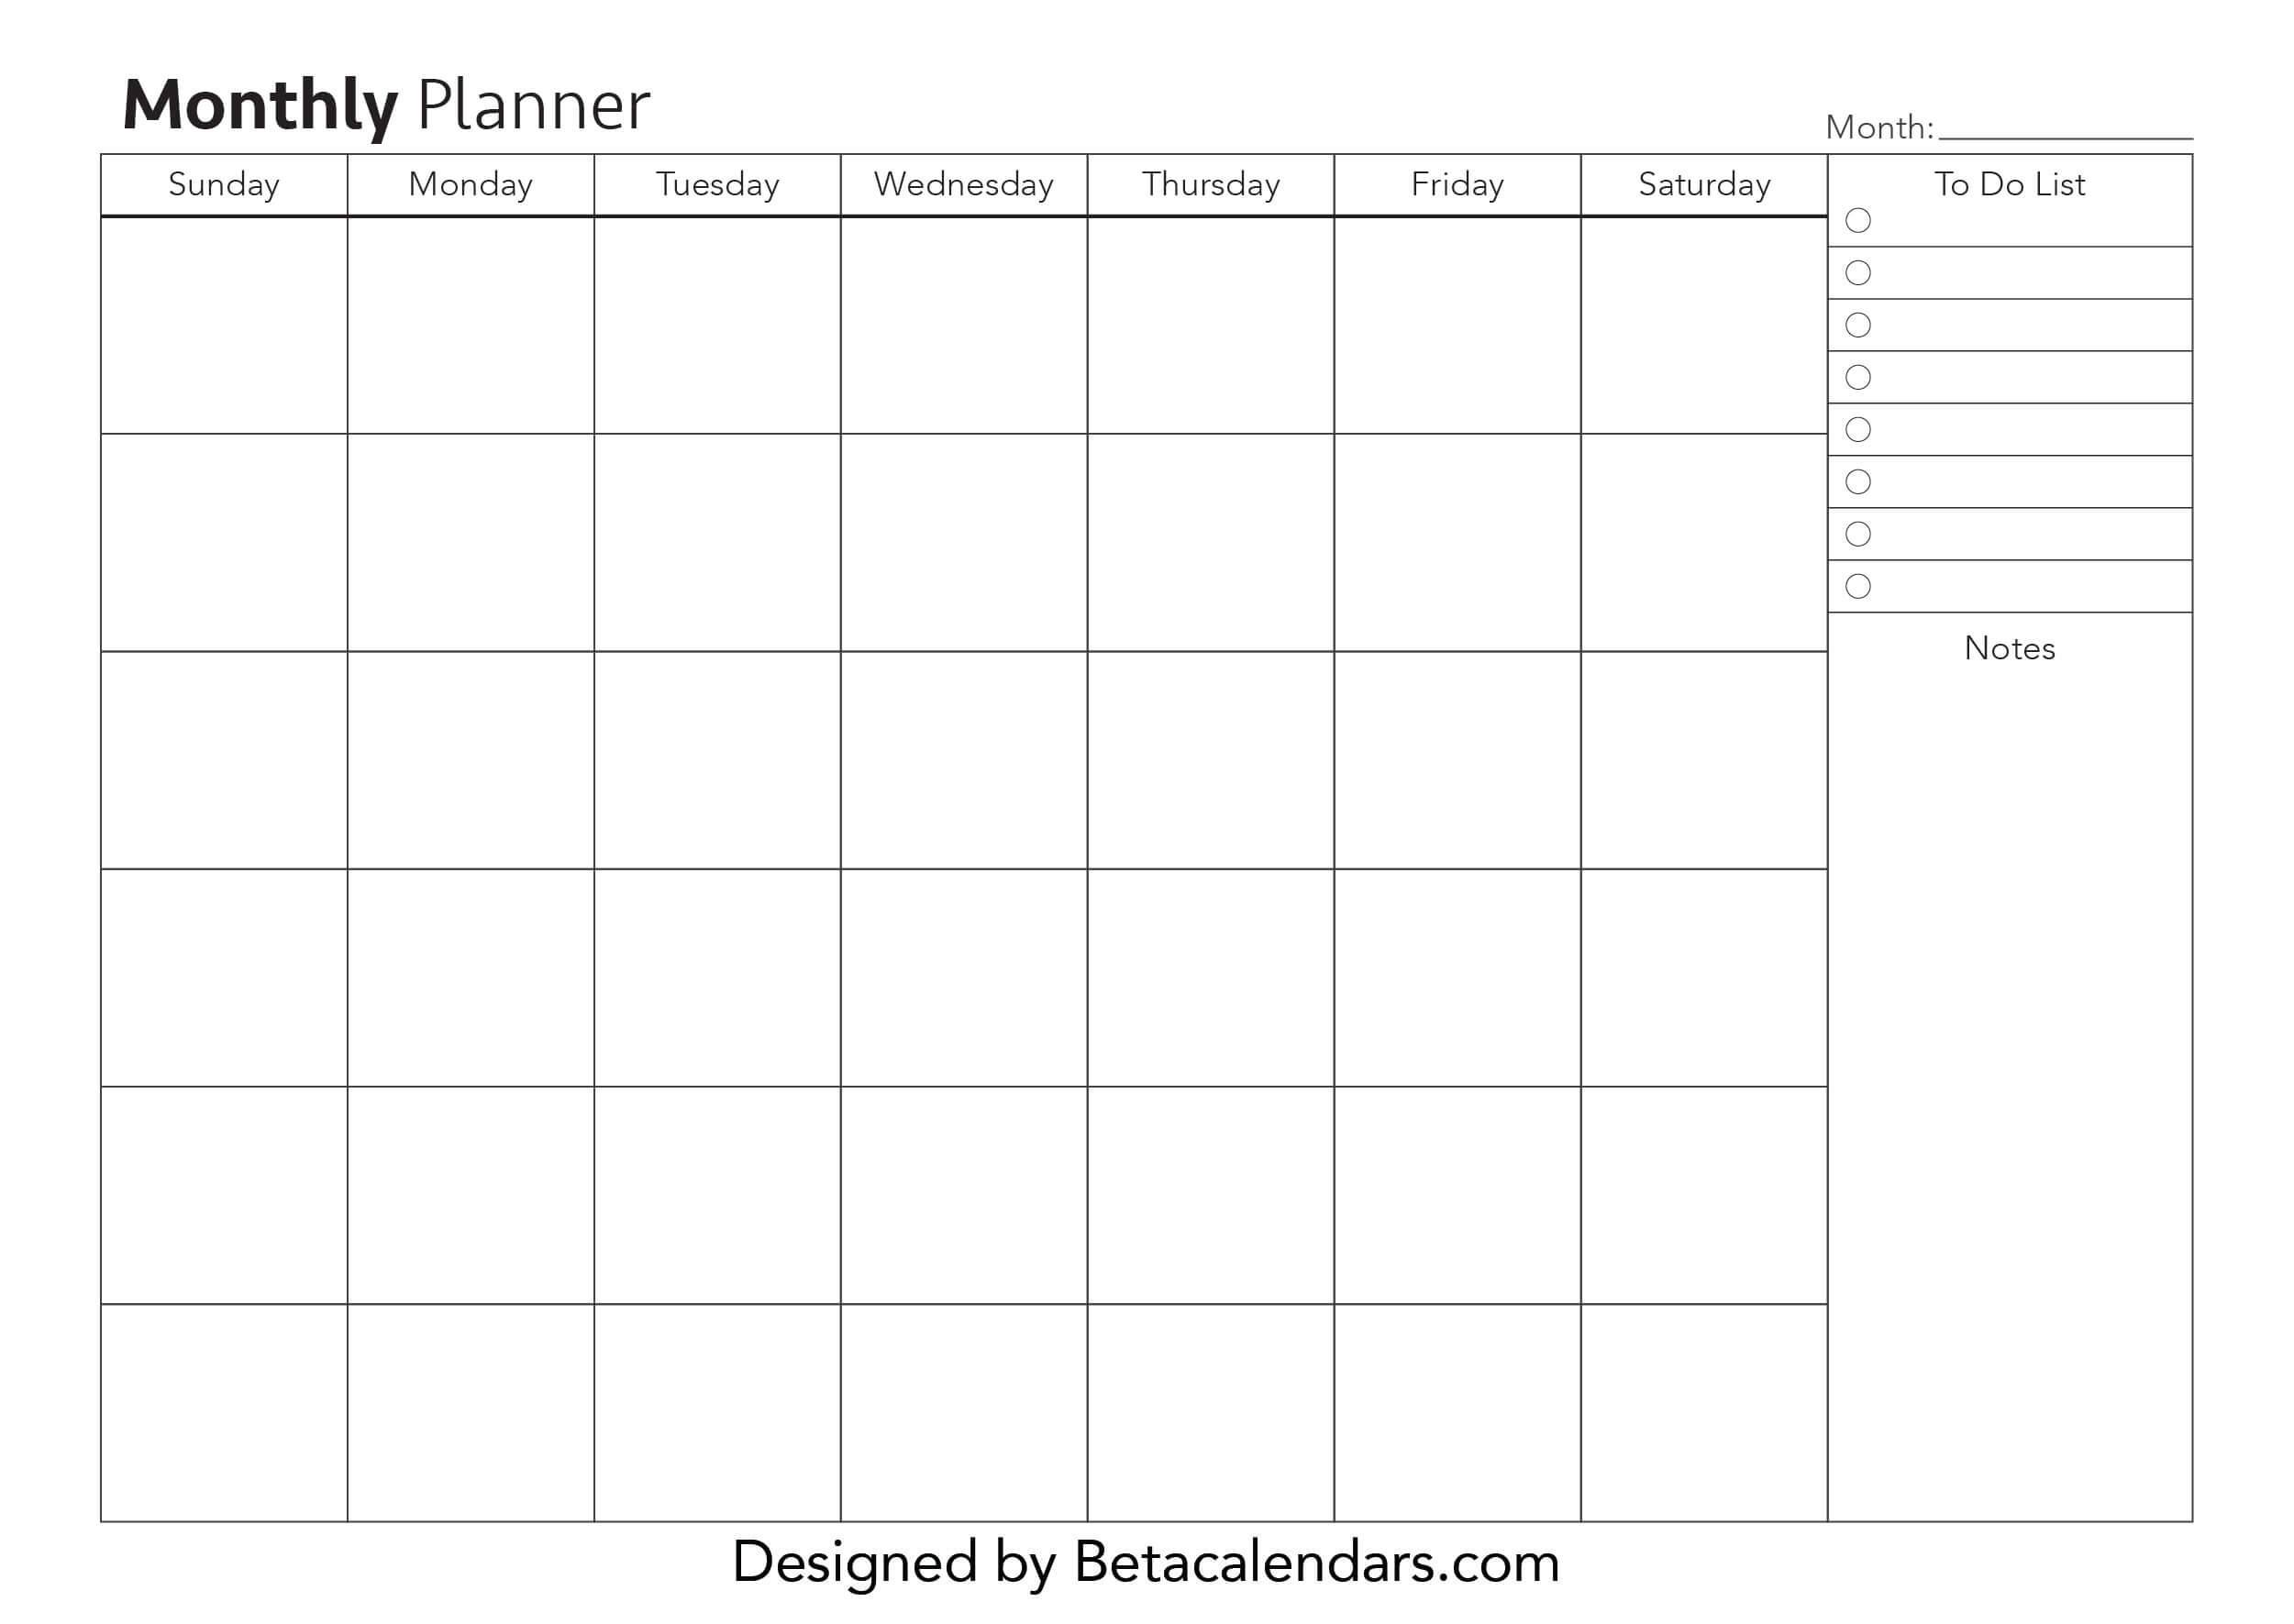 Free Printable Monthly Planner - Beta Calendars-Free Two Page Monthly Planner Templates